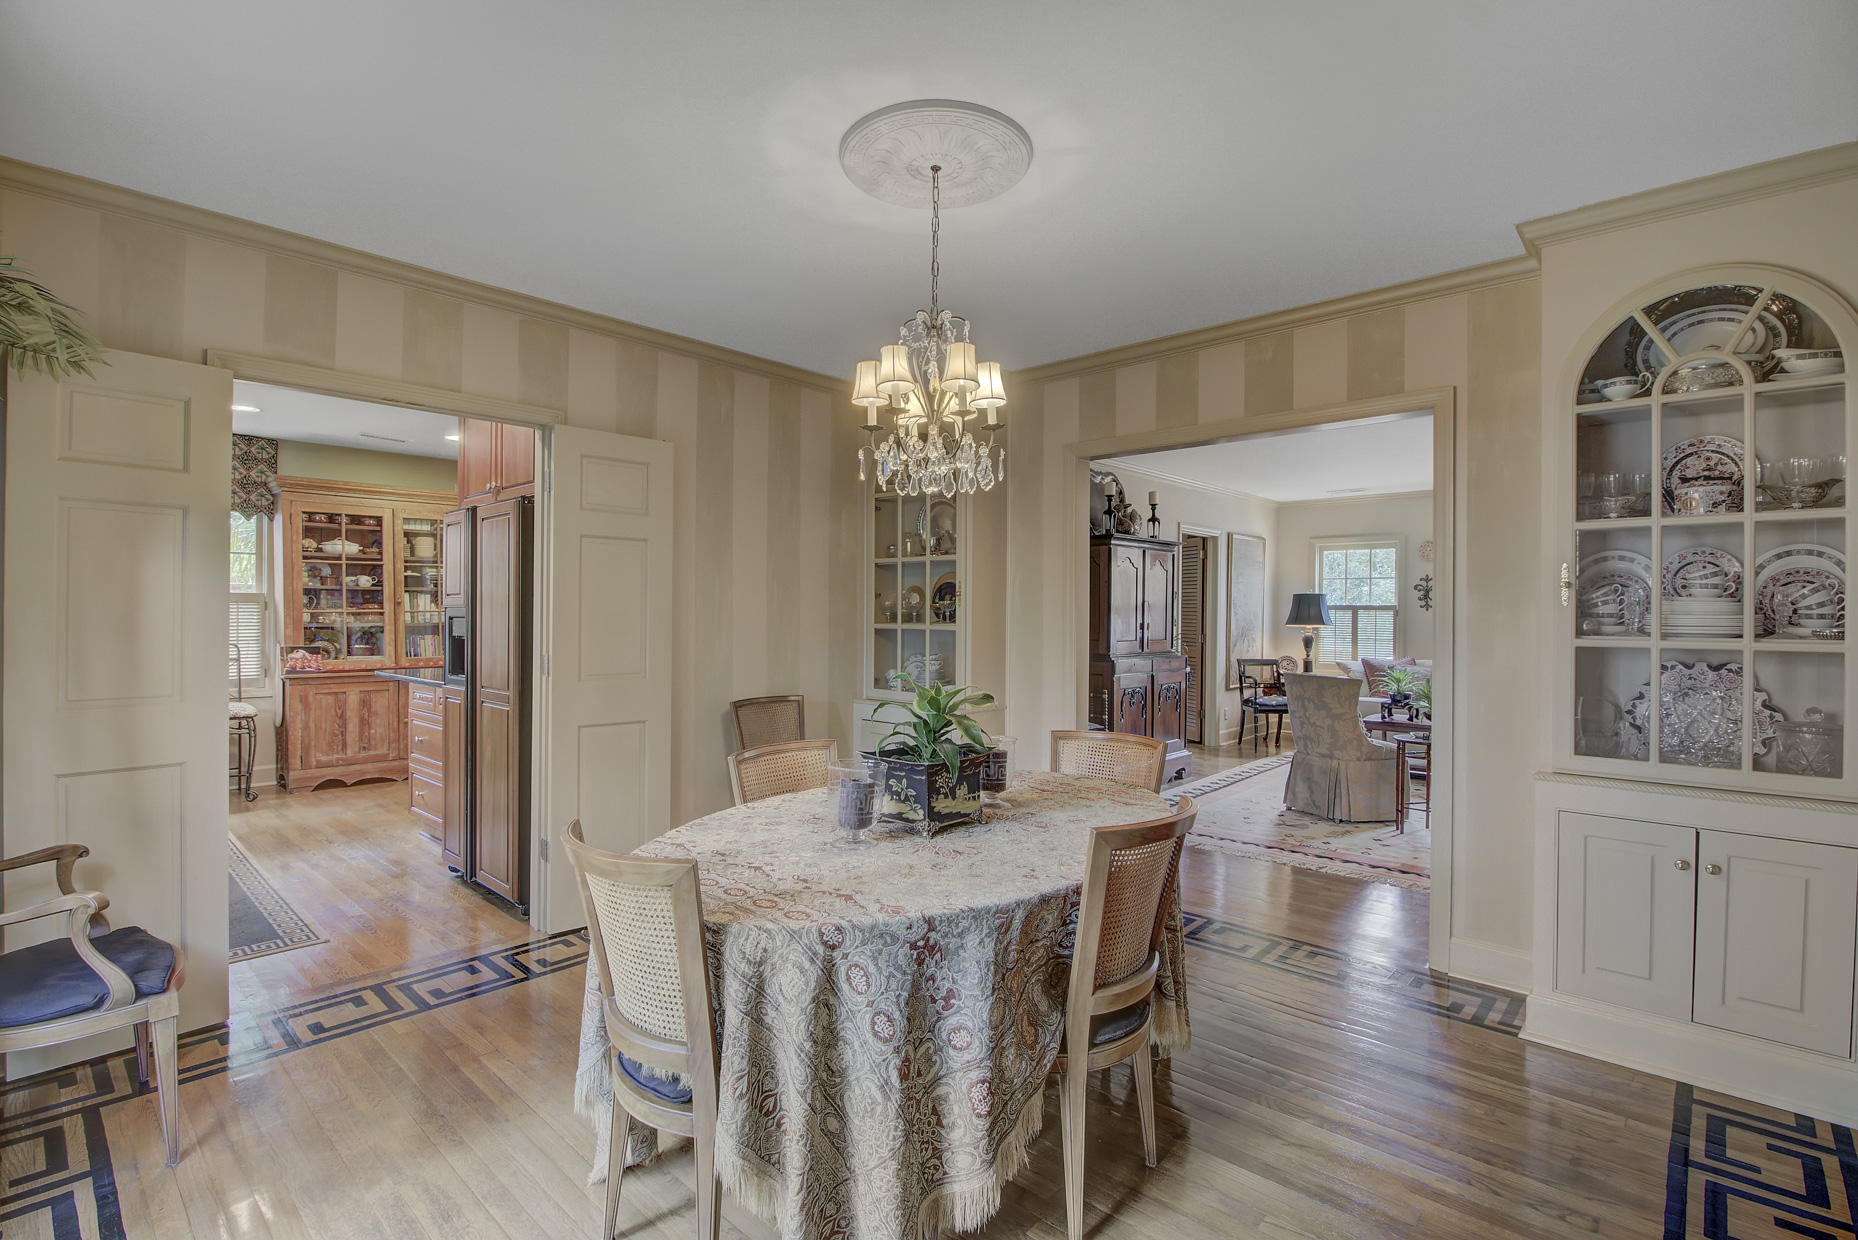 South of Broad Homes For Sale - 2 Colonial, Charleston, SC - 2